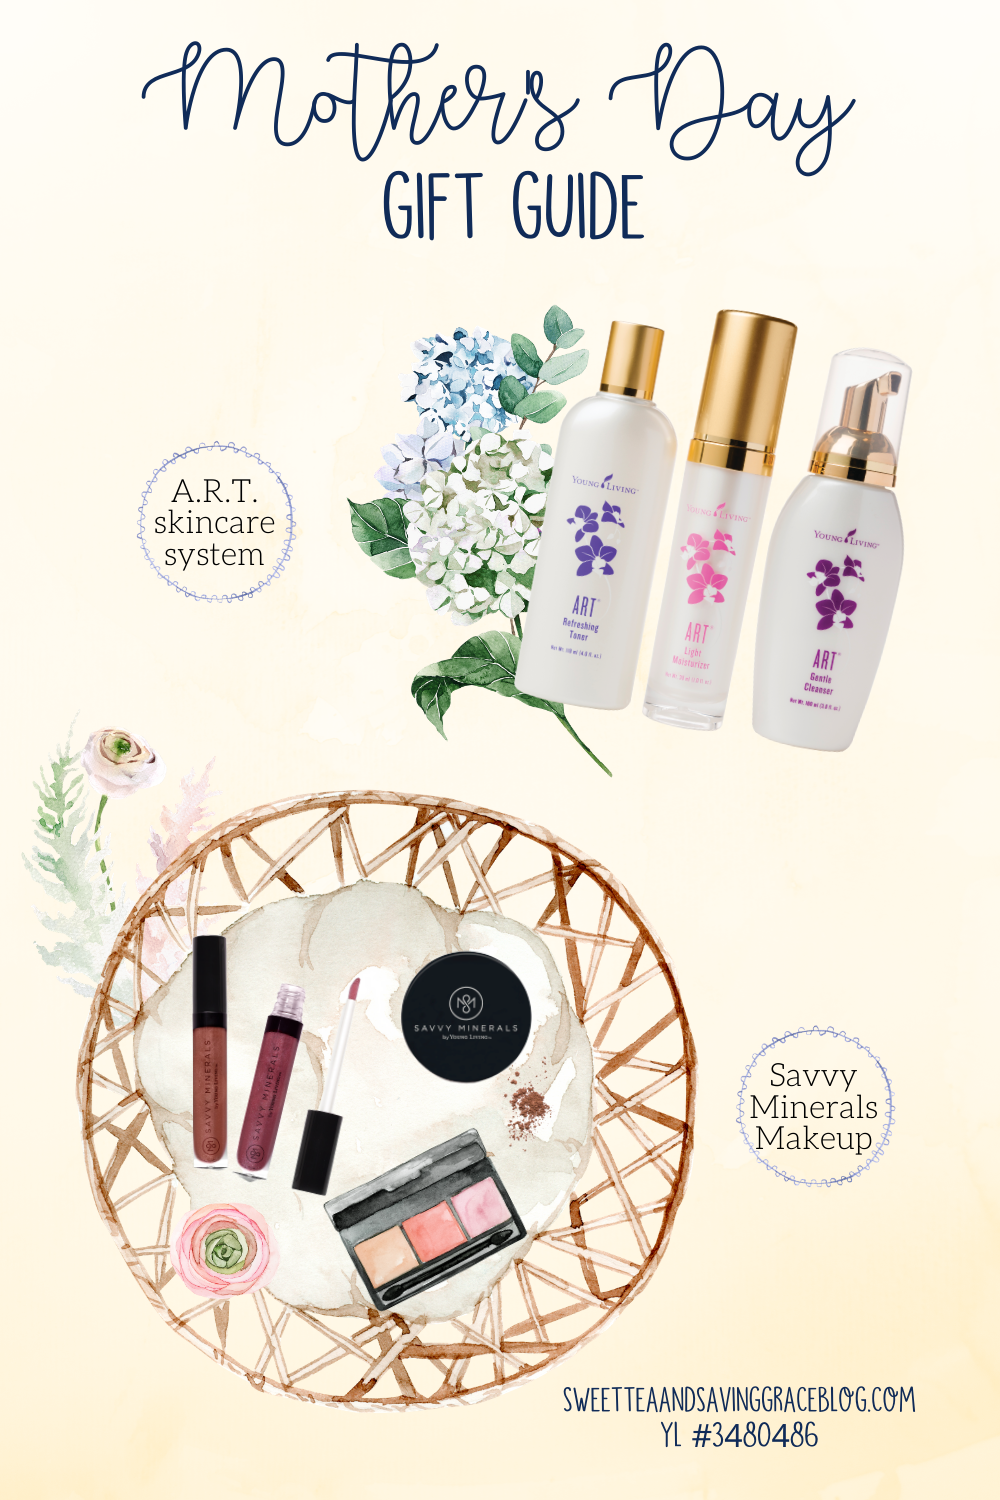 mother's day wellness gift guide young living essential oils non-toxic all-natural skincare makeup savvy minerals makeup art skincare